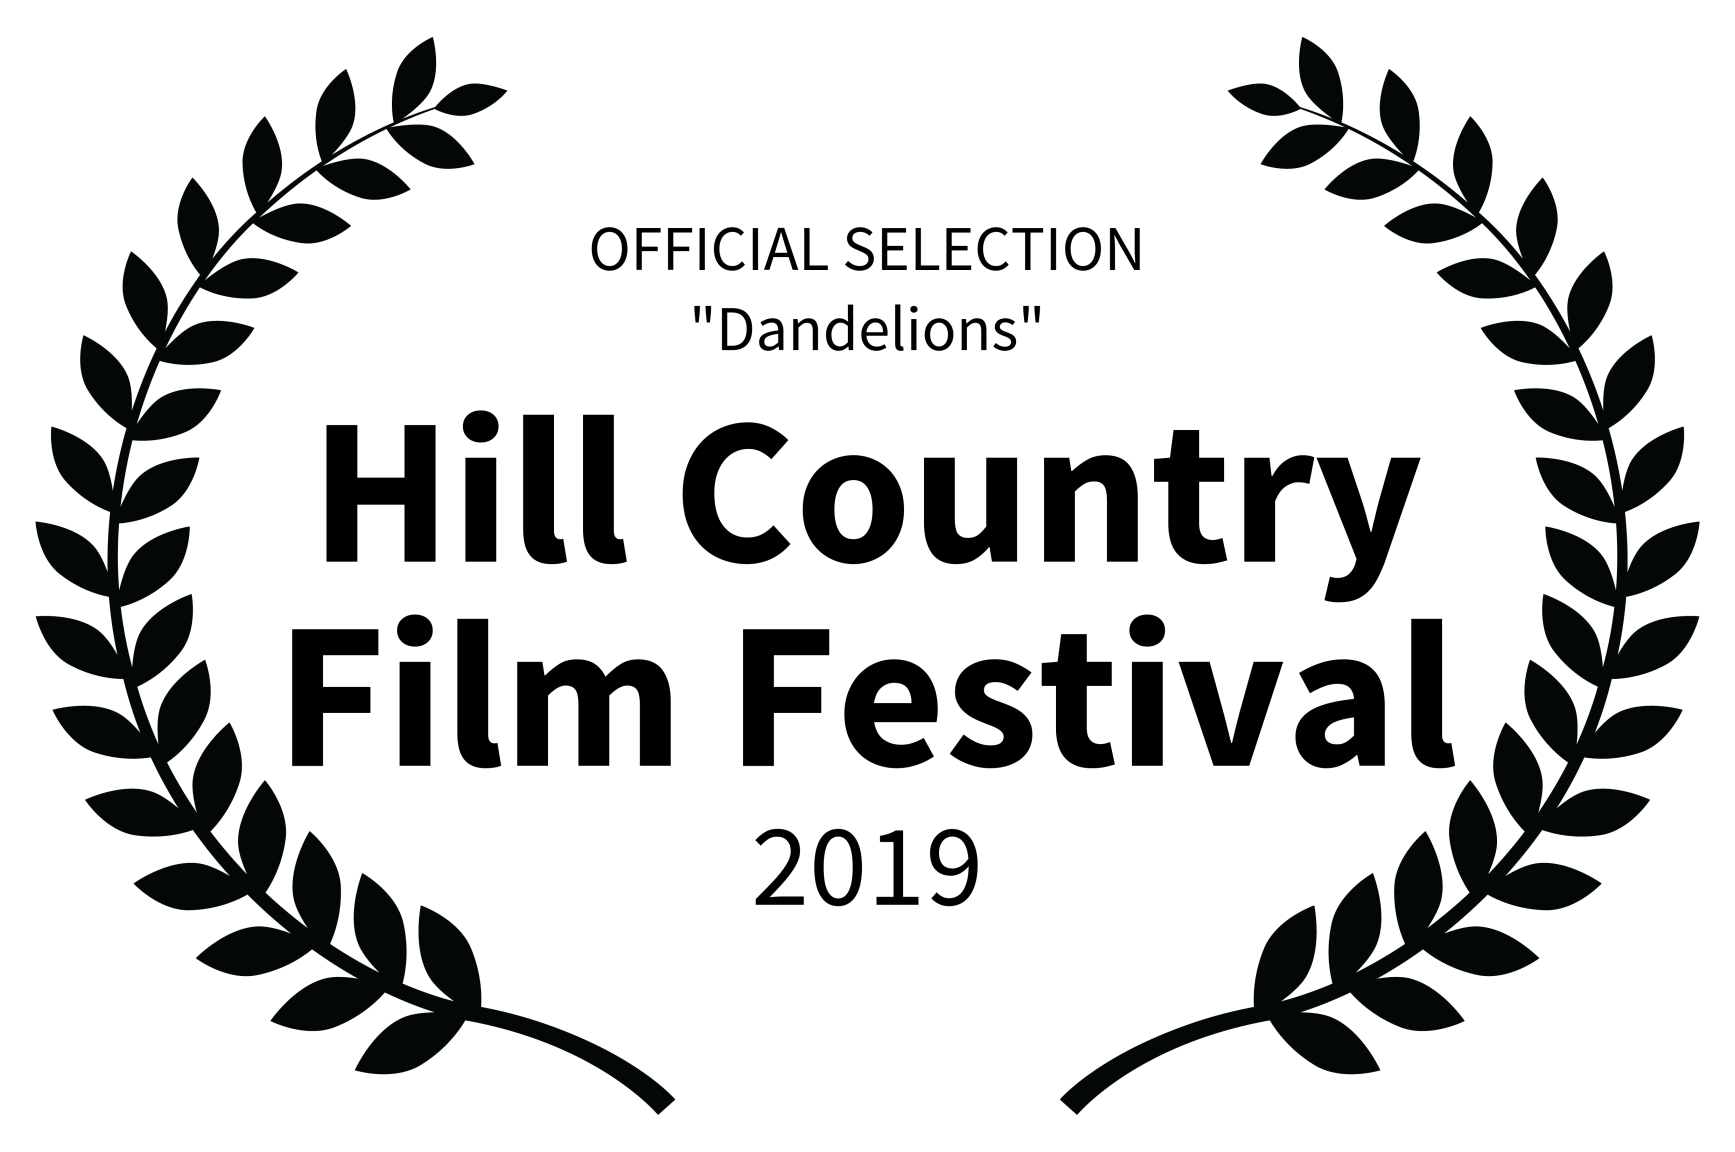 OFFICIAL SELECTION Dandelions - Hill Country Film Festival - 2019_BLK LTR.png